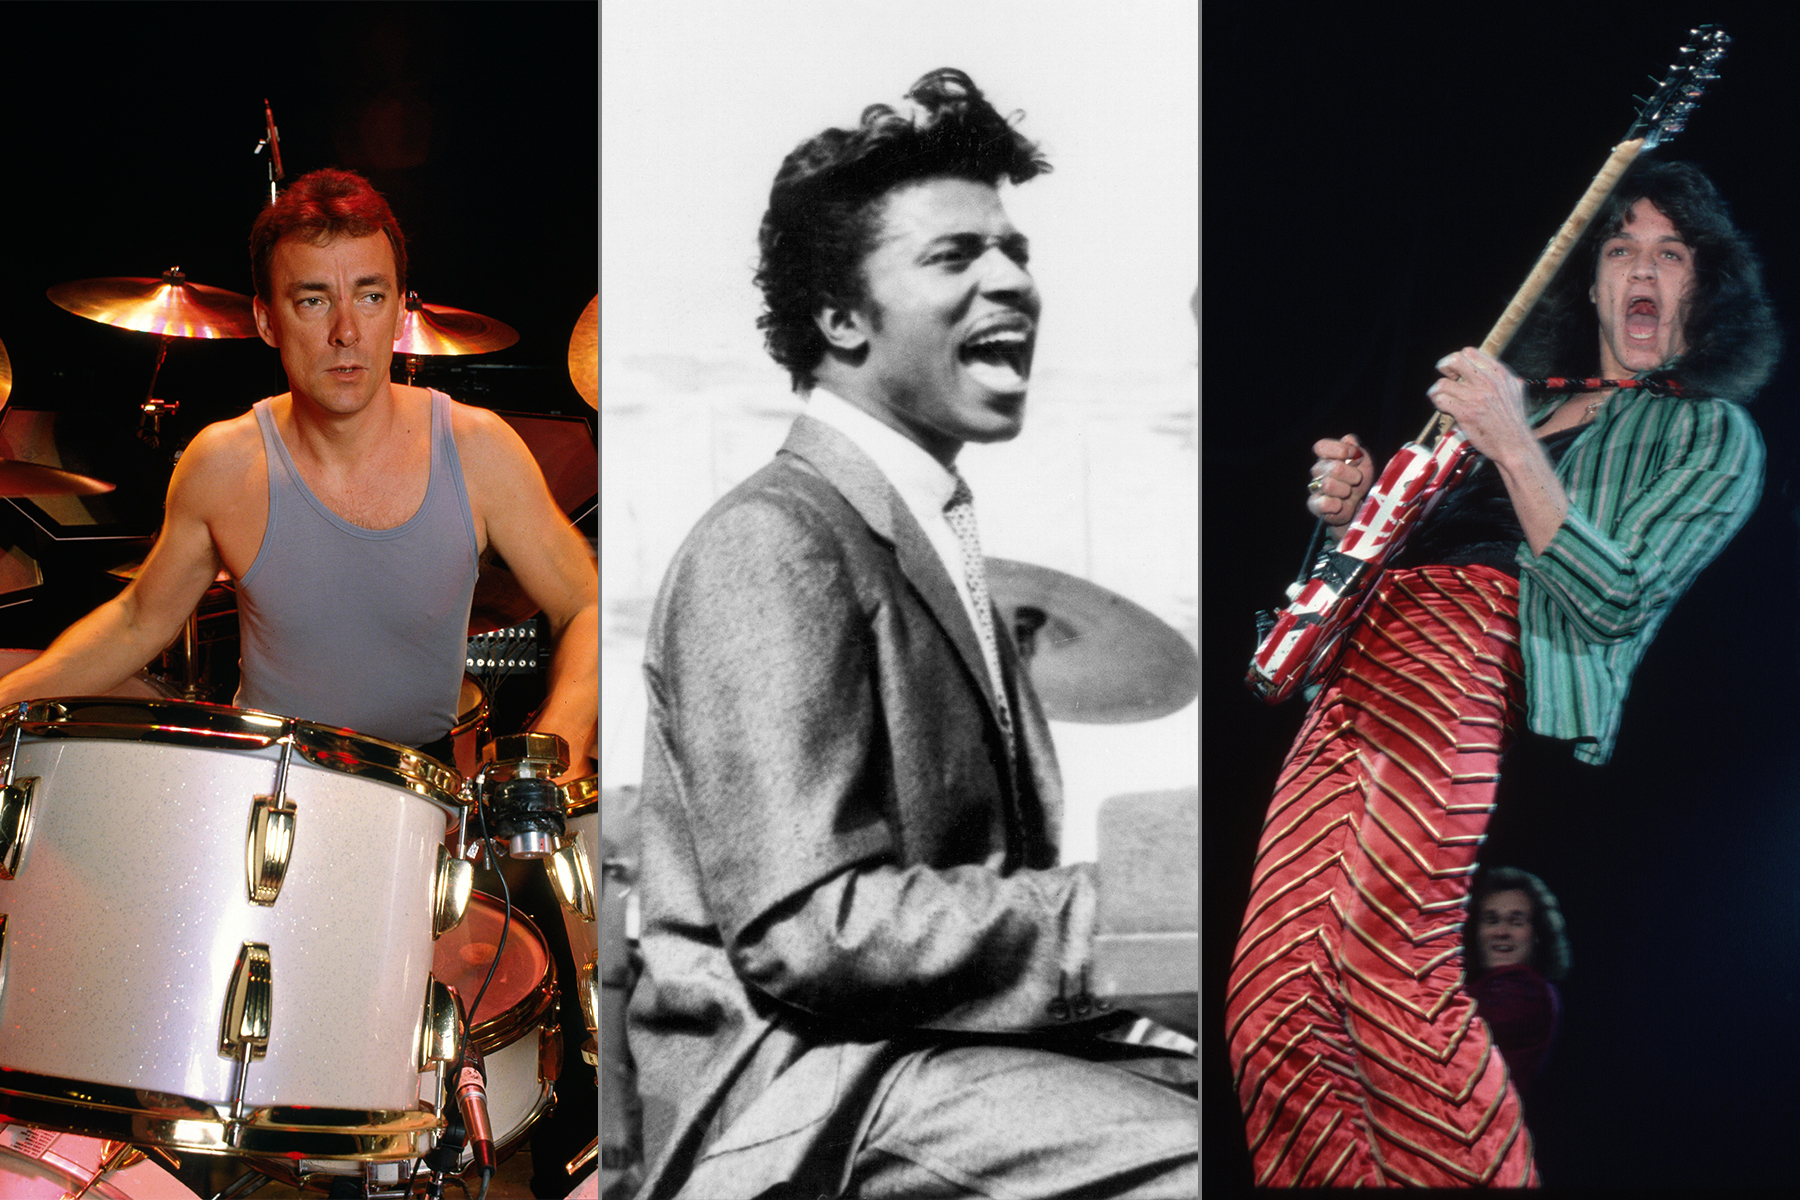 Year In Review: Rolling Stone Music Now Podcasts on Musicians We Lost in 2020